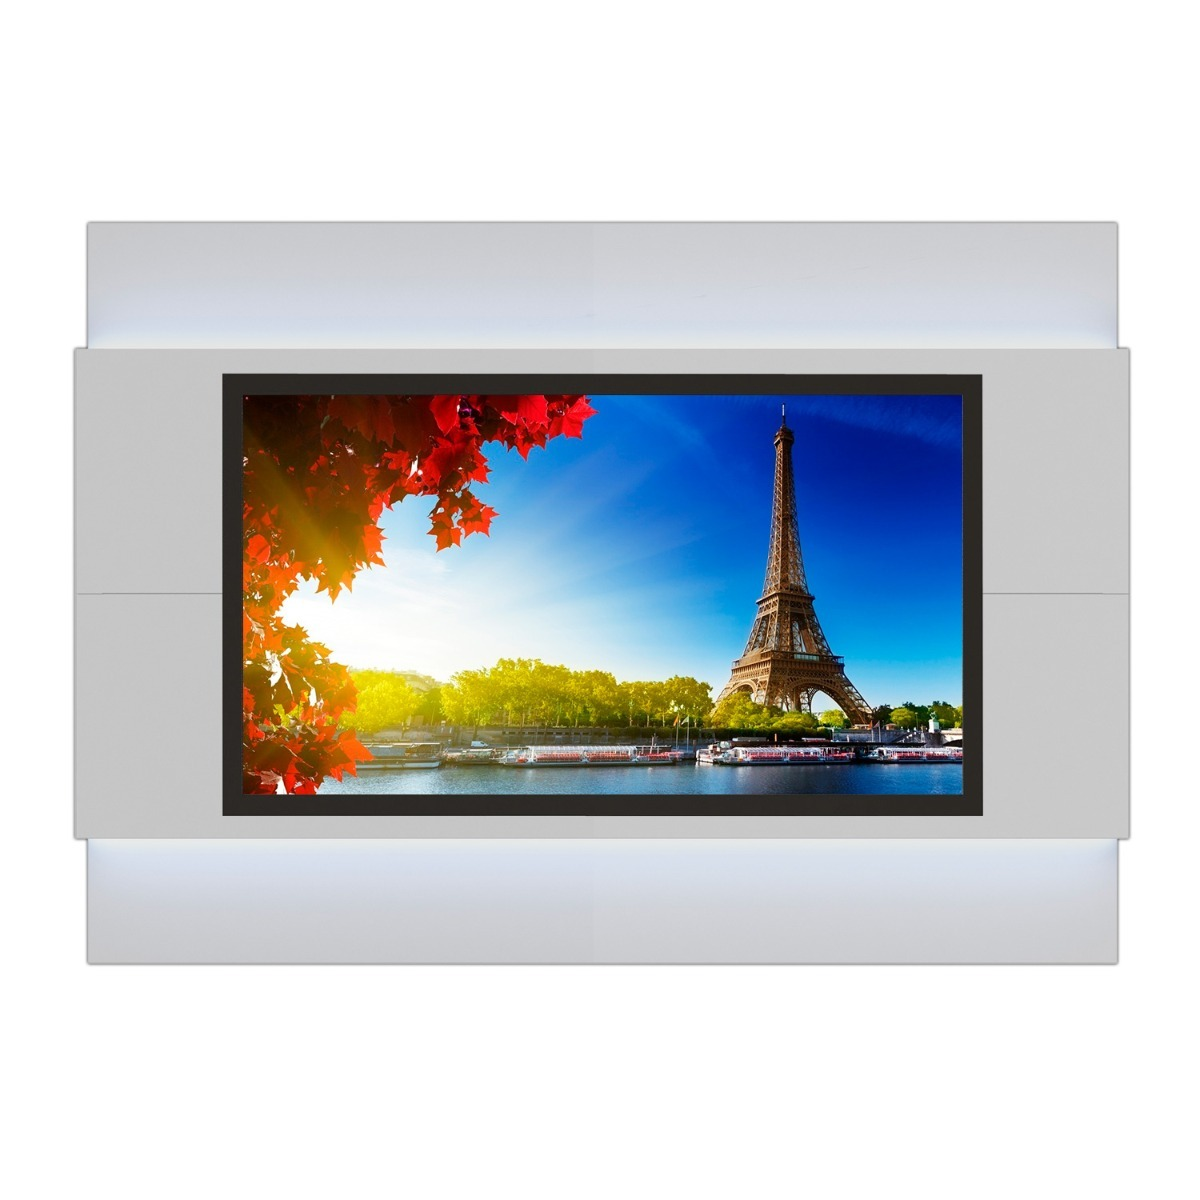 Mueble Tv Pared Panel Colgante Mueble Tv Led 60 De Pared 1 9 Lincoln Mdf